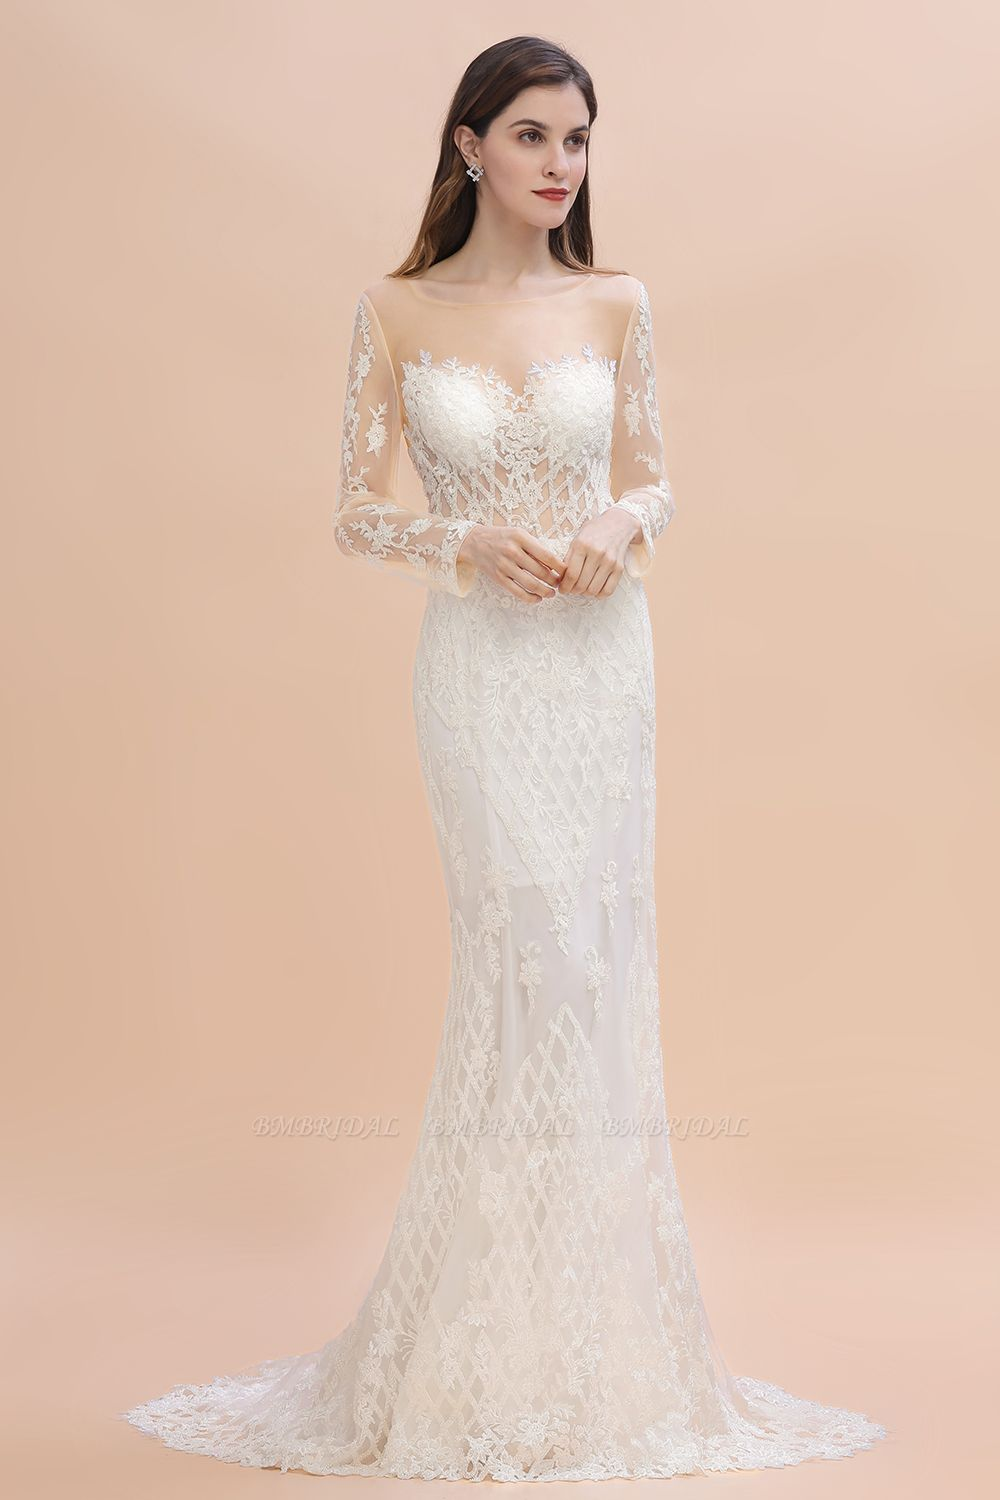 BMbridal Gorgeous Jewel Tulle Lace Wedding Dress Long Sleeves Appliques Mermaid Bridal Gowns On Sale